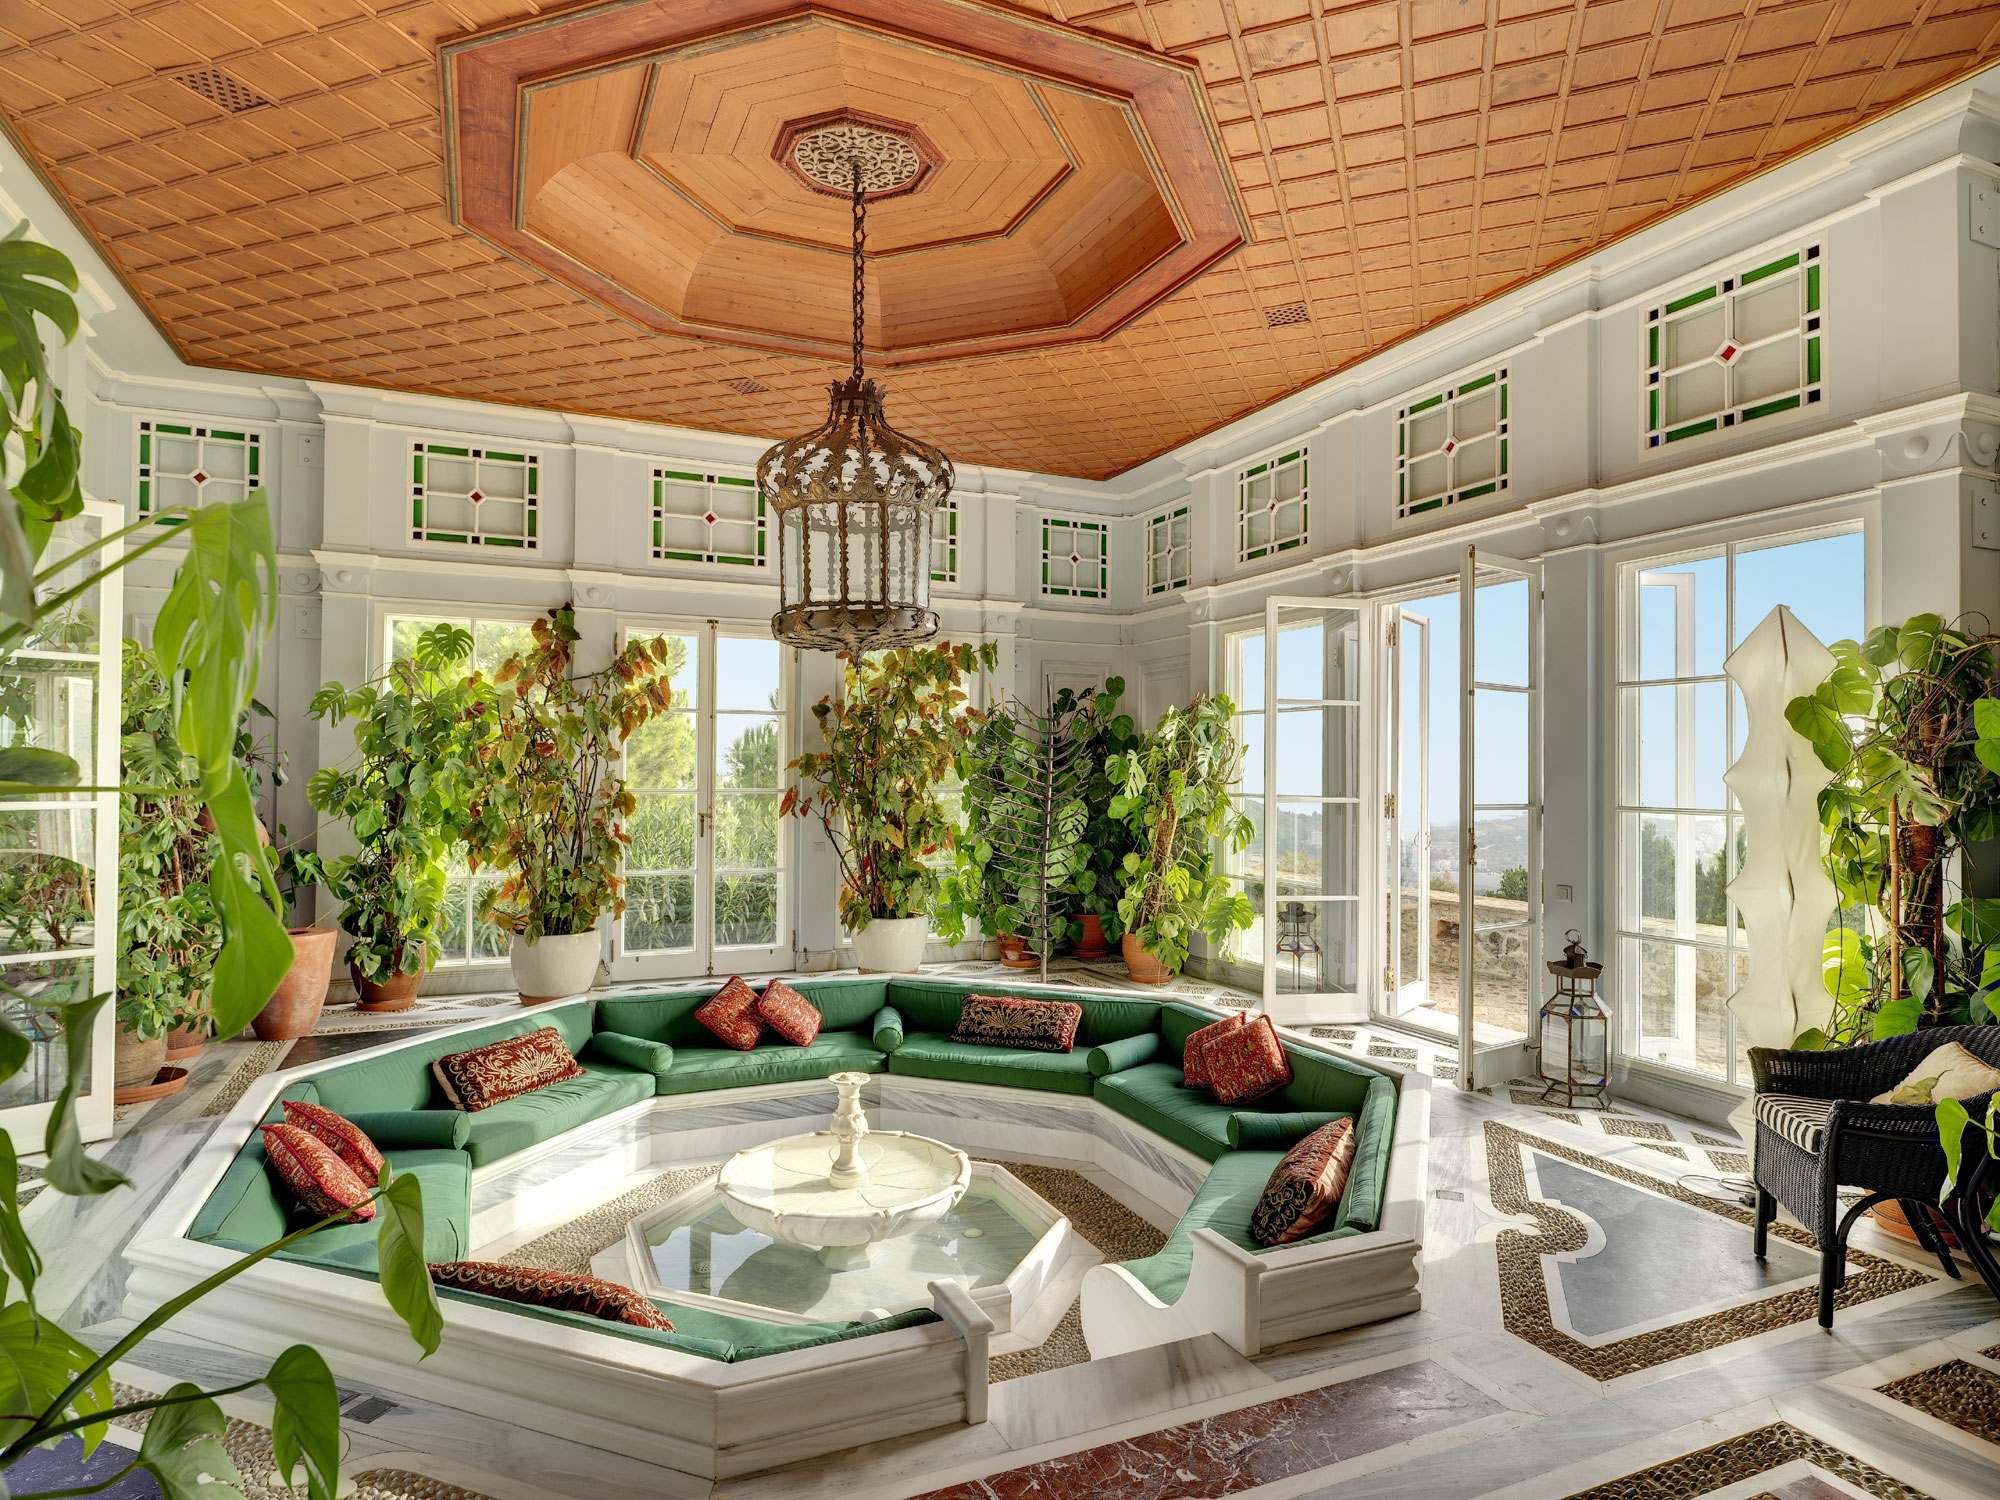 Every element of this Athenian estate exudes an atmosphere of luxury and style; among the home's myriad relaxation areas is a classically inspired sunroom with views over the outlying Mediterranean landscape.